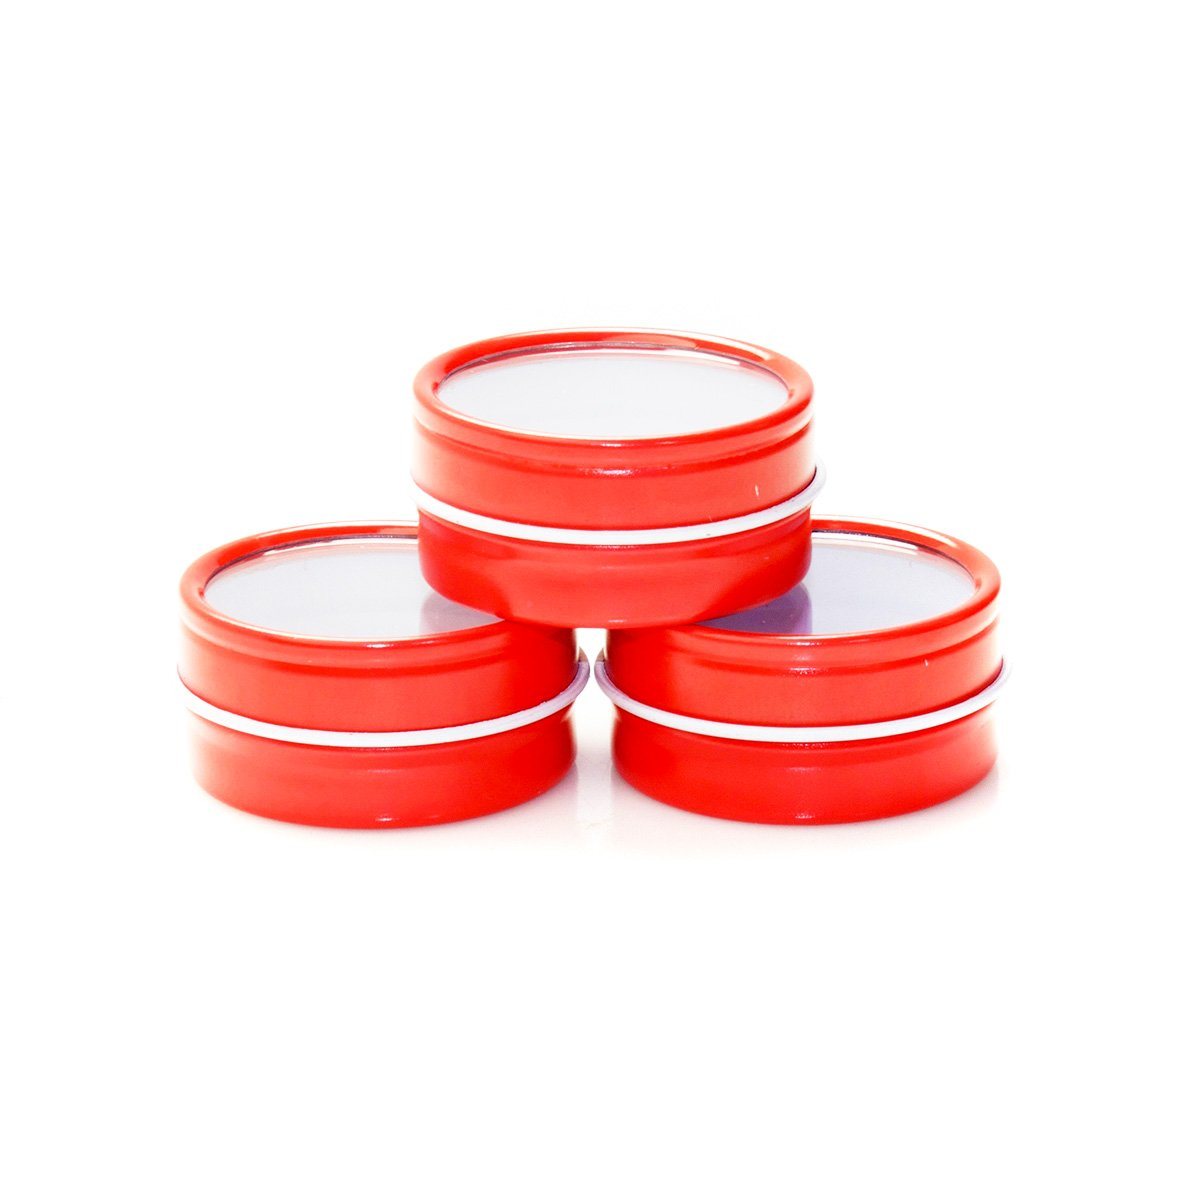 Mimi Pack 1/2 oz Shallow Window Top Slip Lid Tins For Salves, Favors, Spices, Balms, Candles, Gifts Limited Run Series 24 Pack (Red)